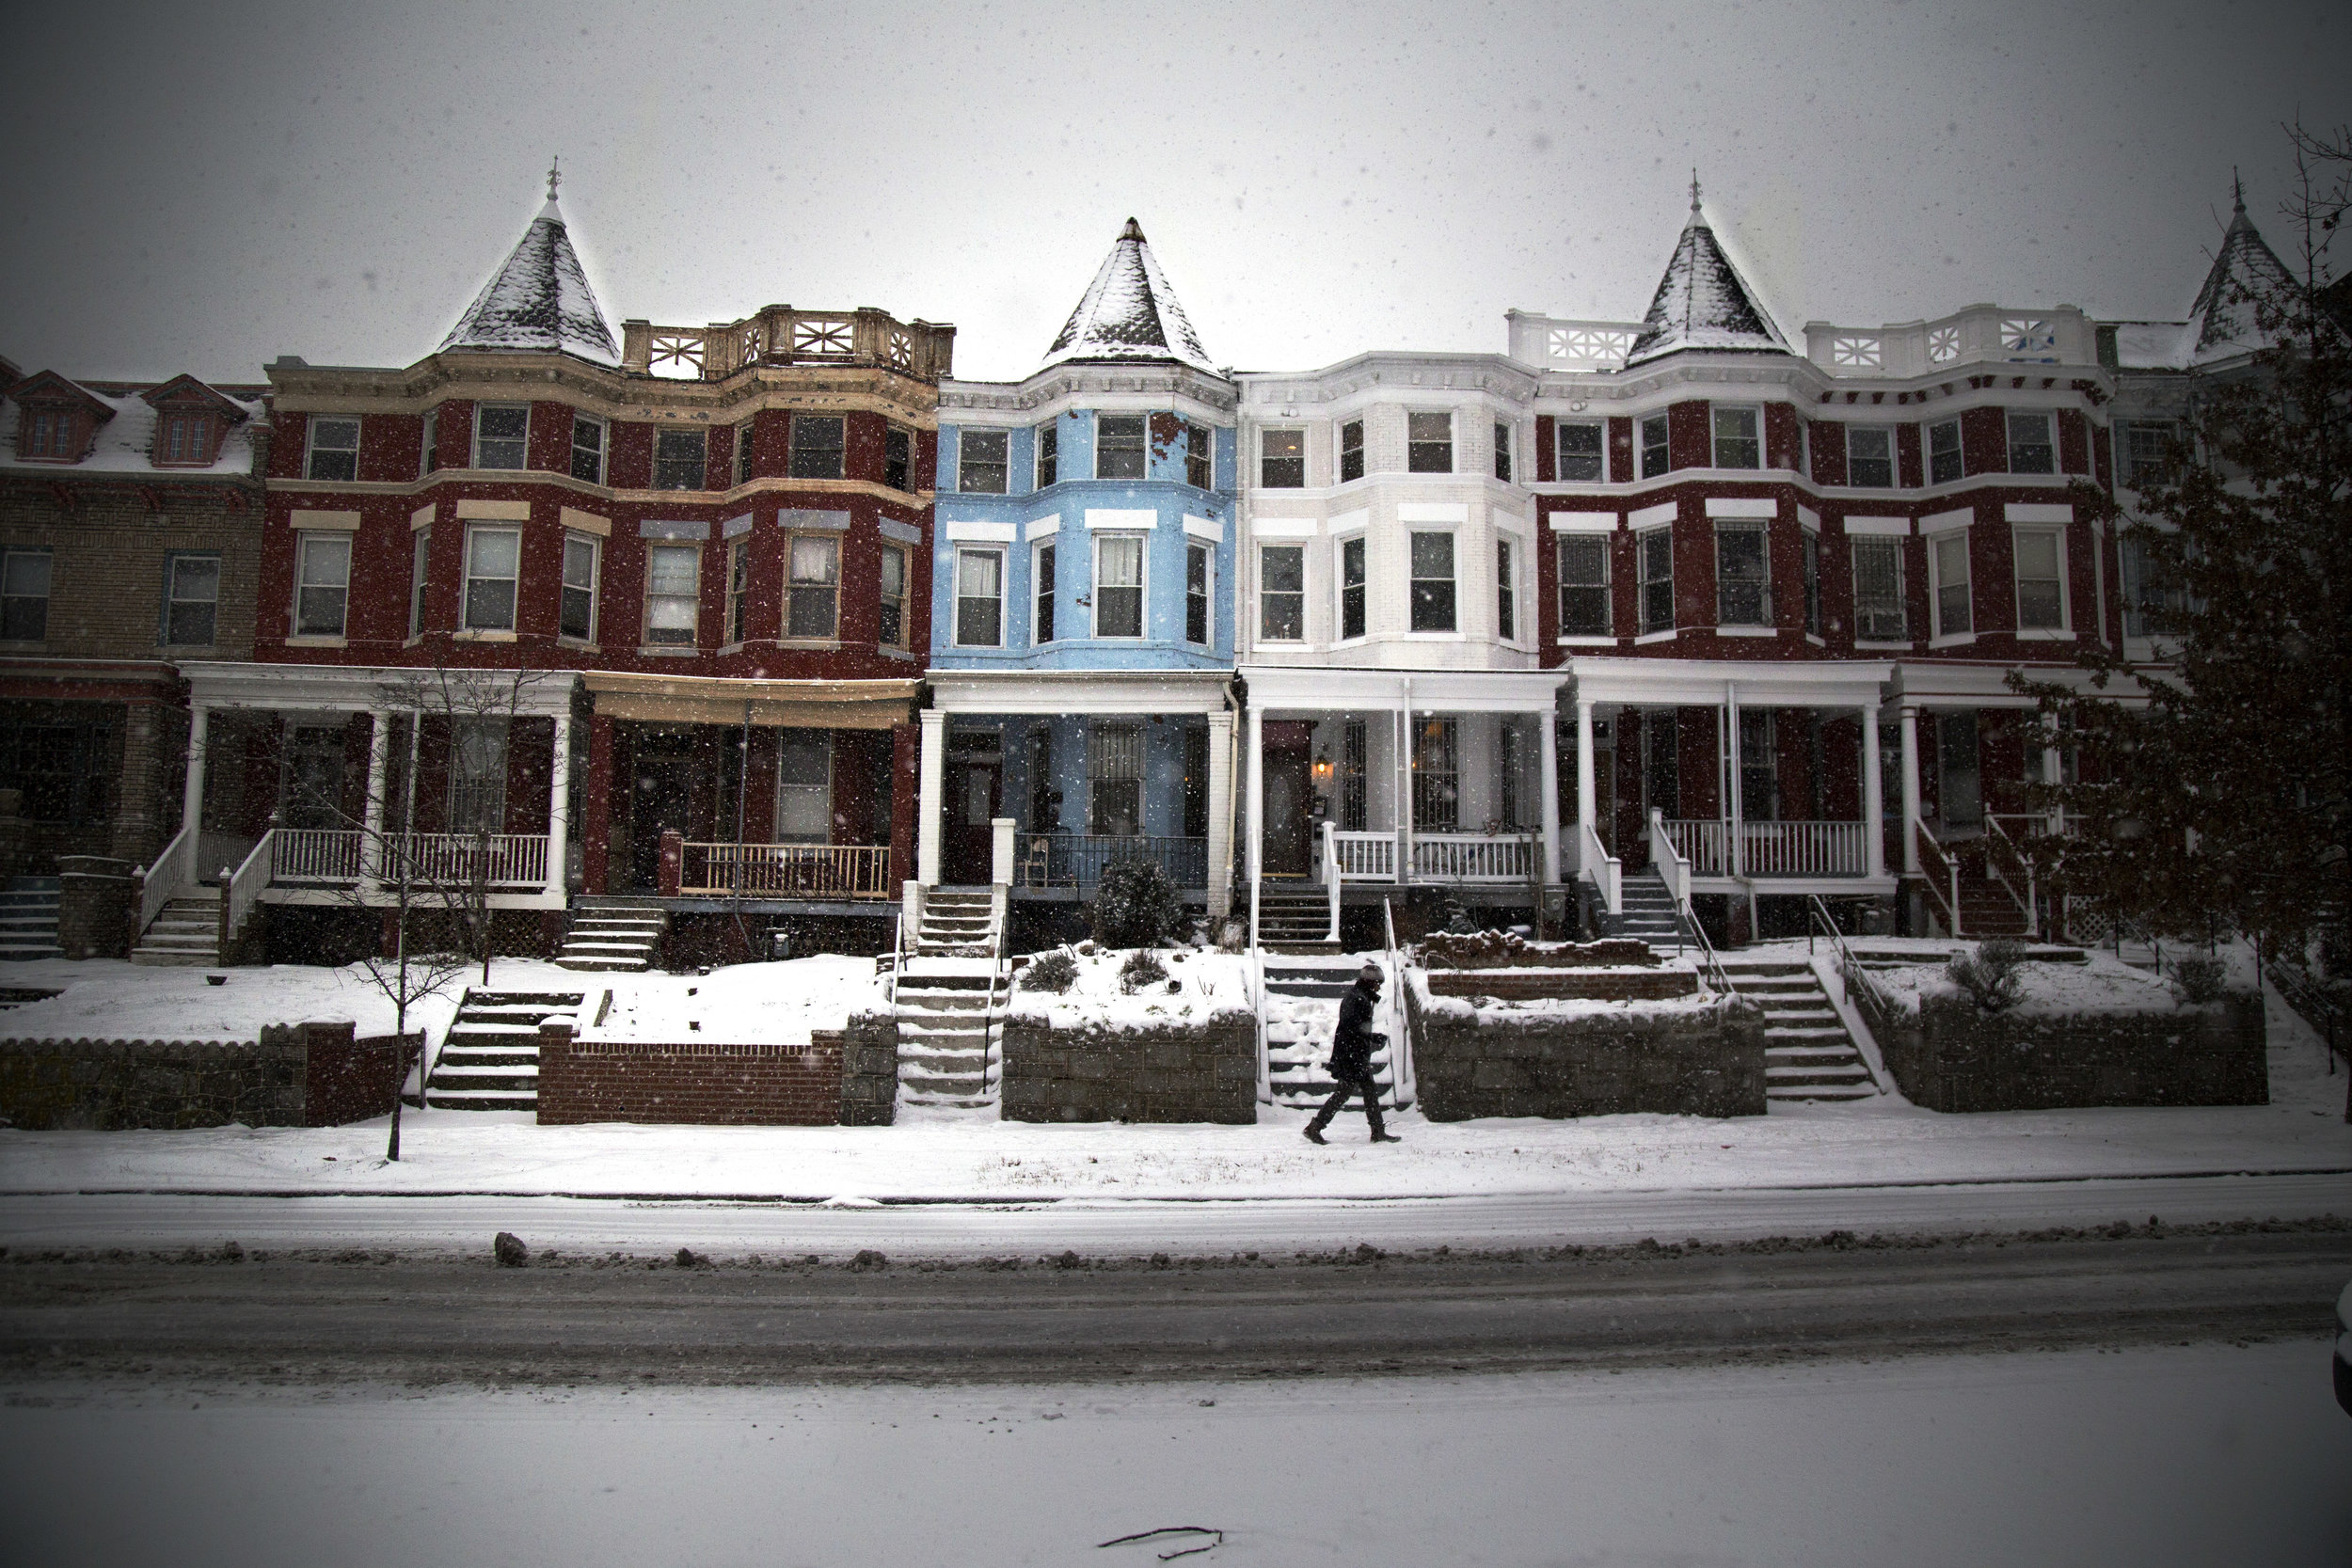 Snowpocalypse, Washington, D.C., January 2016